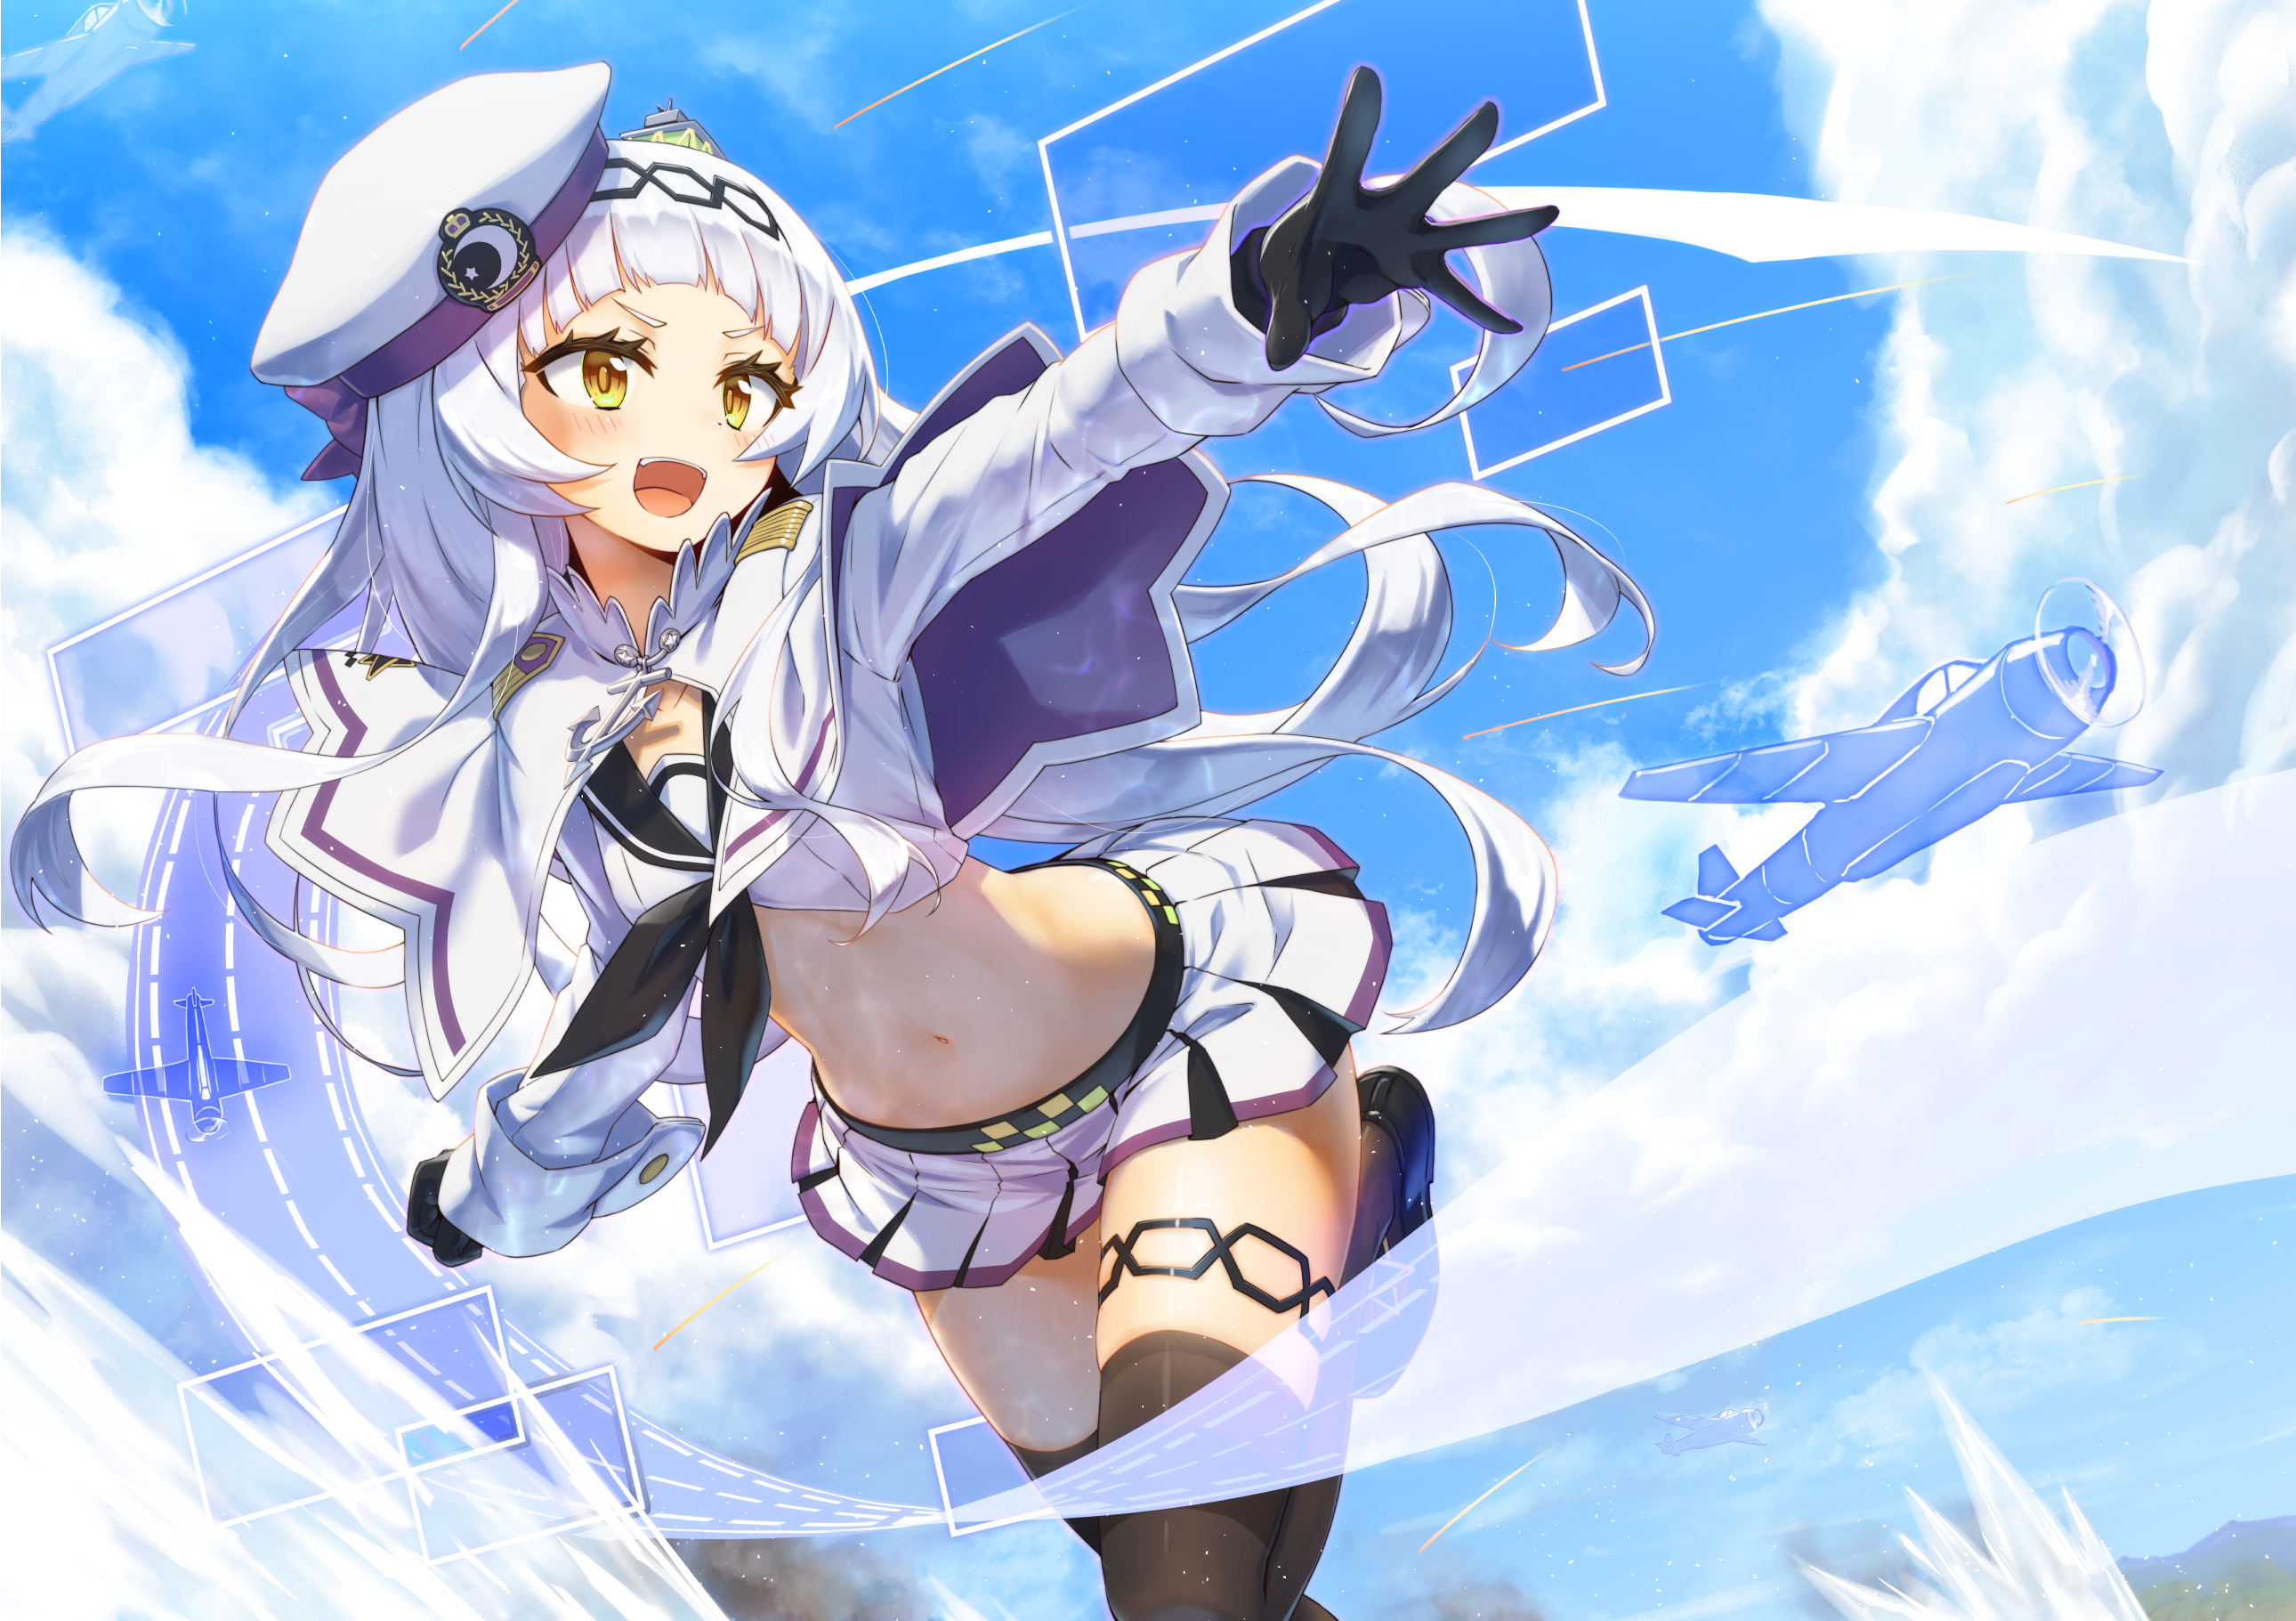 Anime 2580x1821 Murasaki Shion gray hair long hair yellow eyes hat belly skirt thighs stockings open mouth blush cape clouds gloves navels sky school uniform Hololive Virtual Youtuber Azur Lane anime